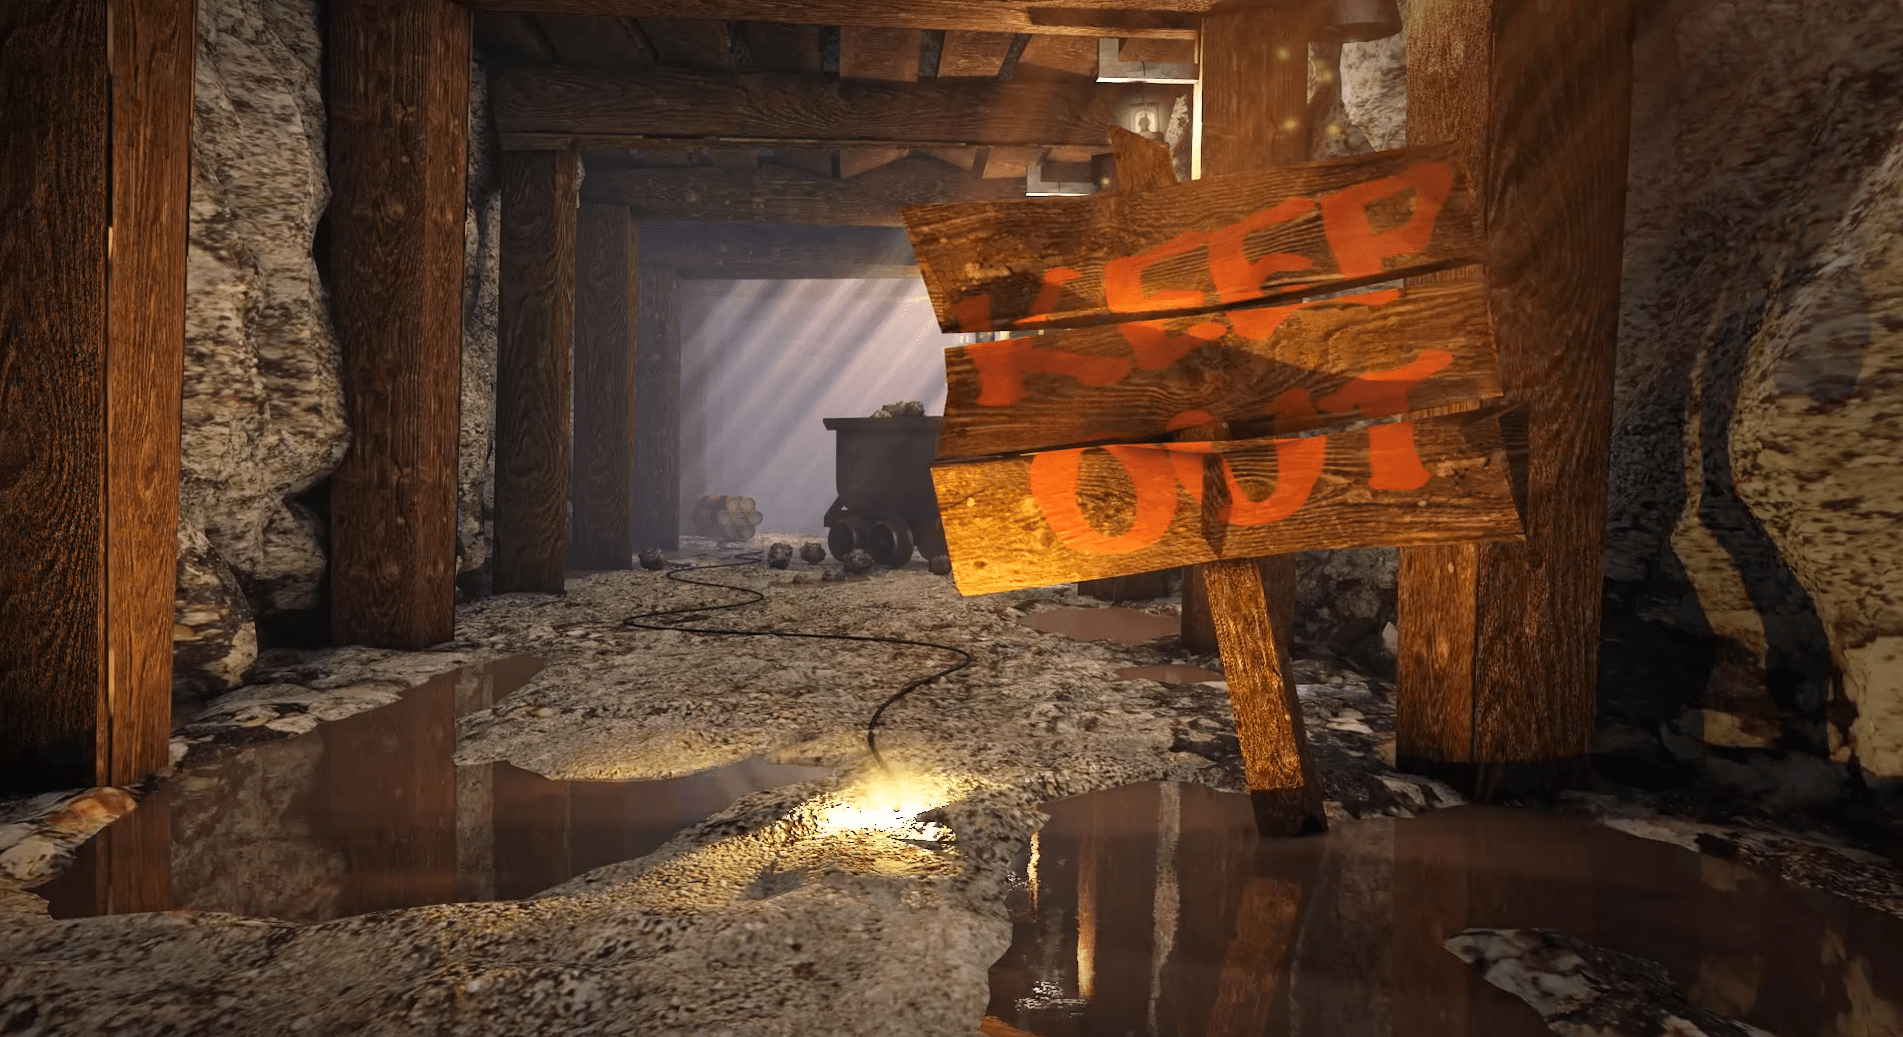 A 3D cartoon mine shaft environment with fuse that explodes a bomb